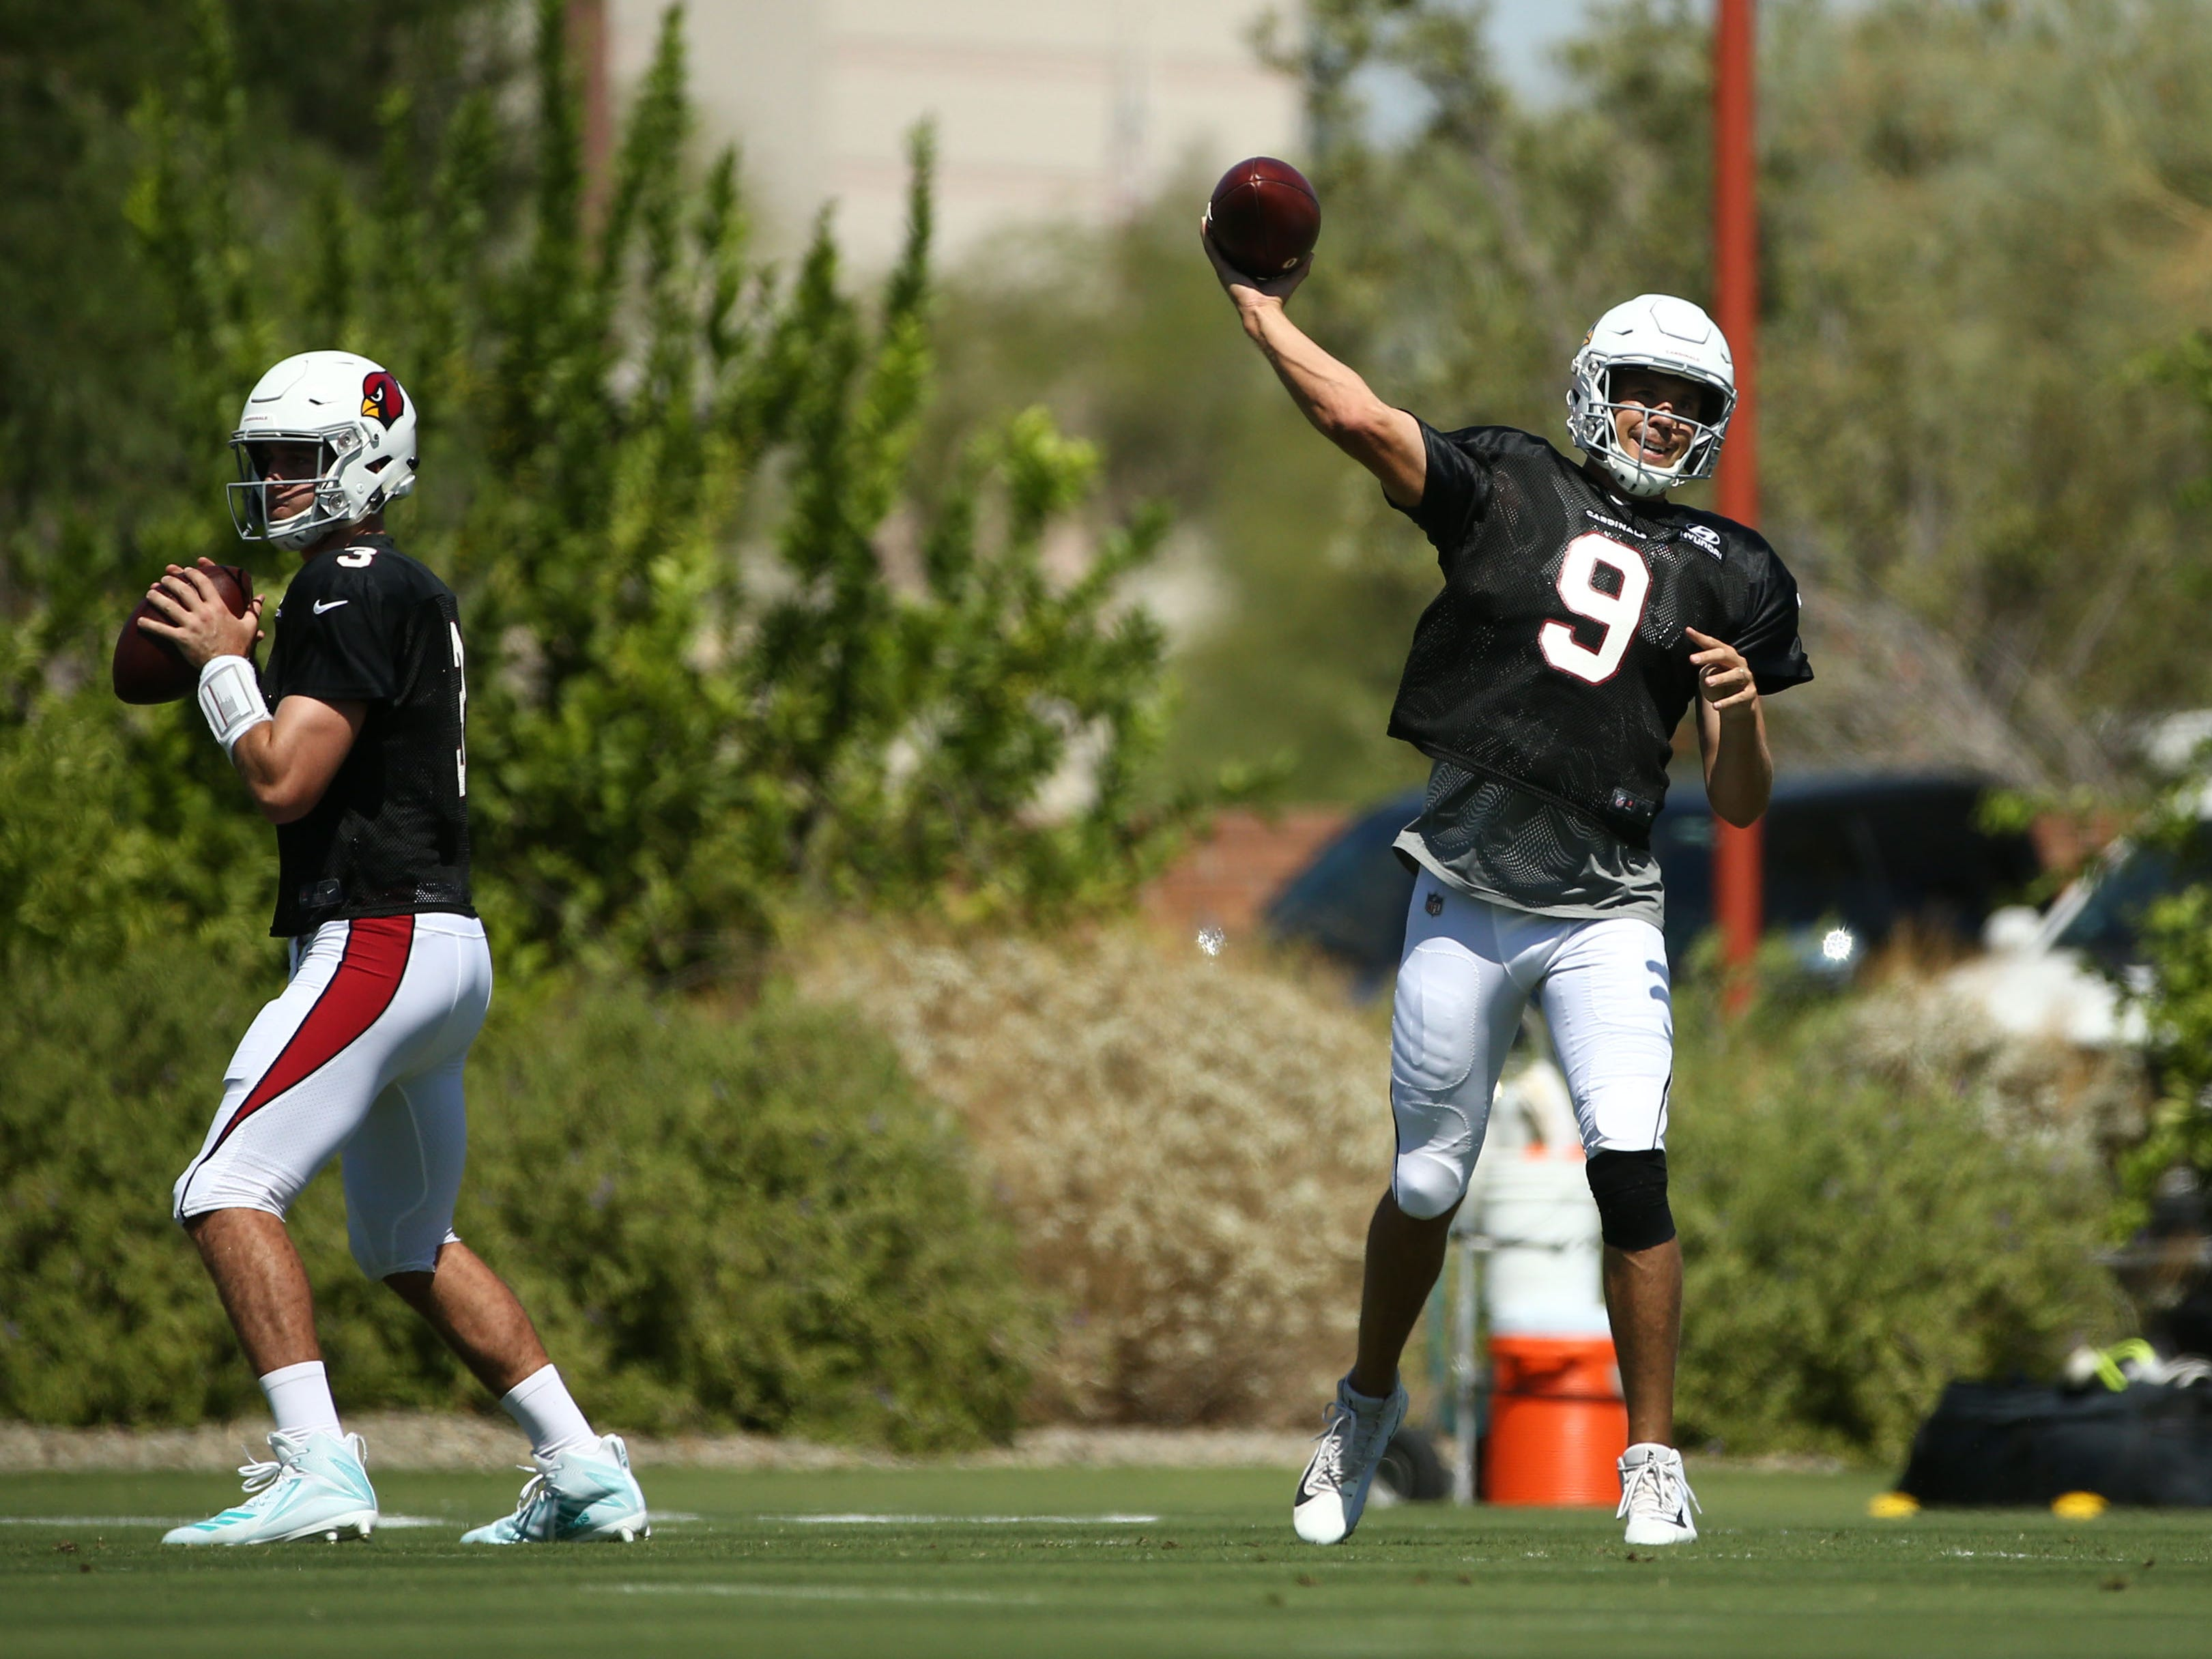 Arizona Cardinals quarterback Sam Bradford (9) during practice on Sep. 5, 2018 at the Arizona Cardinals Training Facility in Tempe, Ariz.